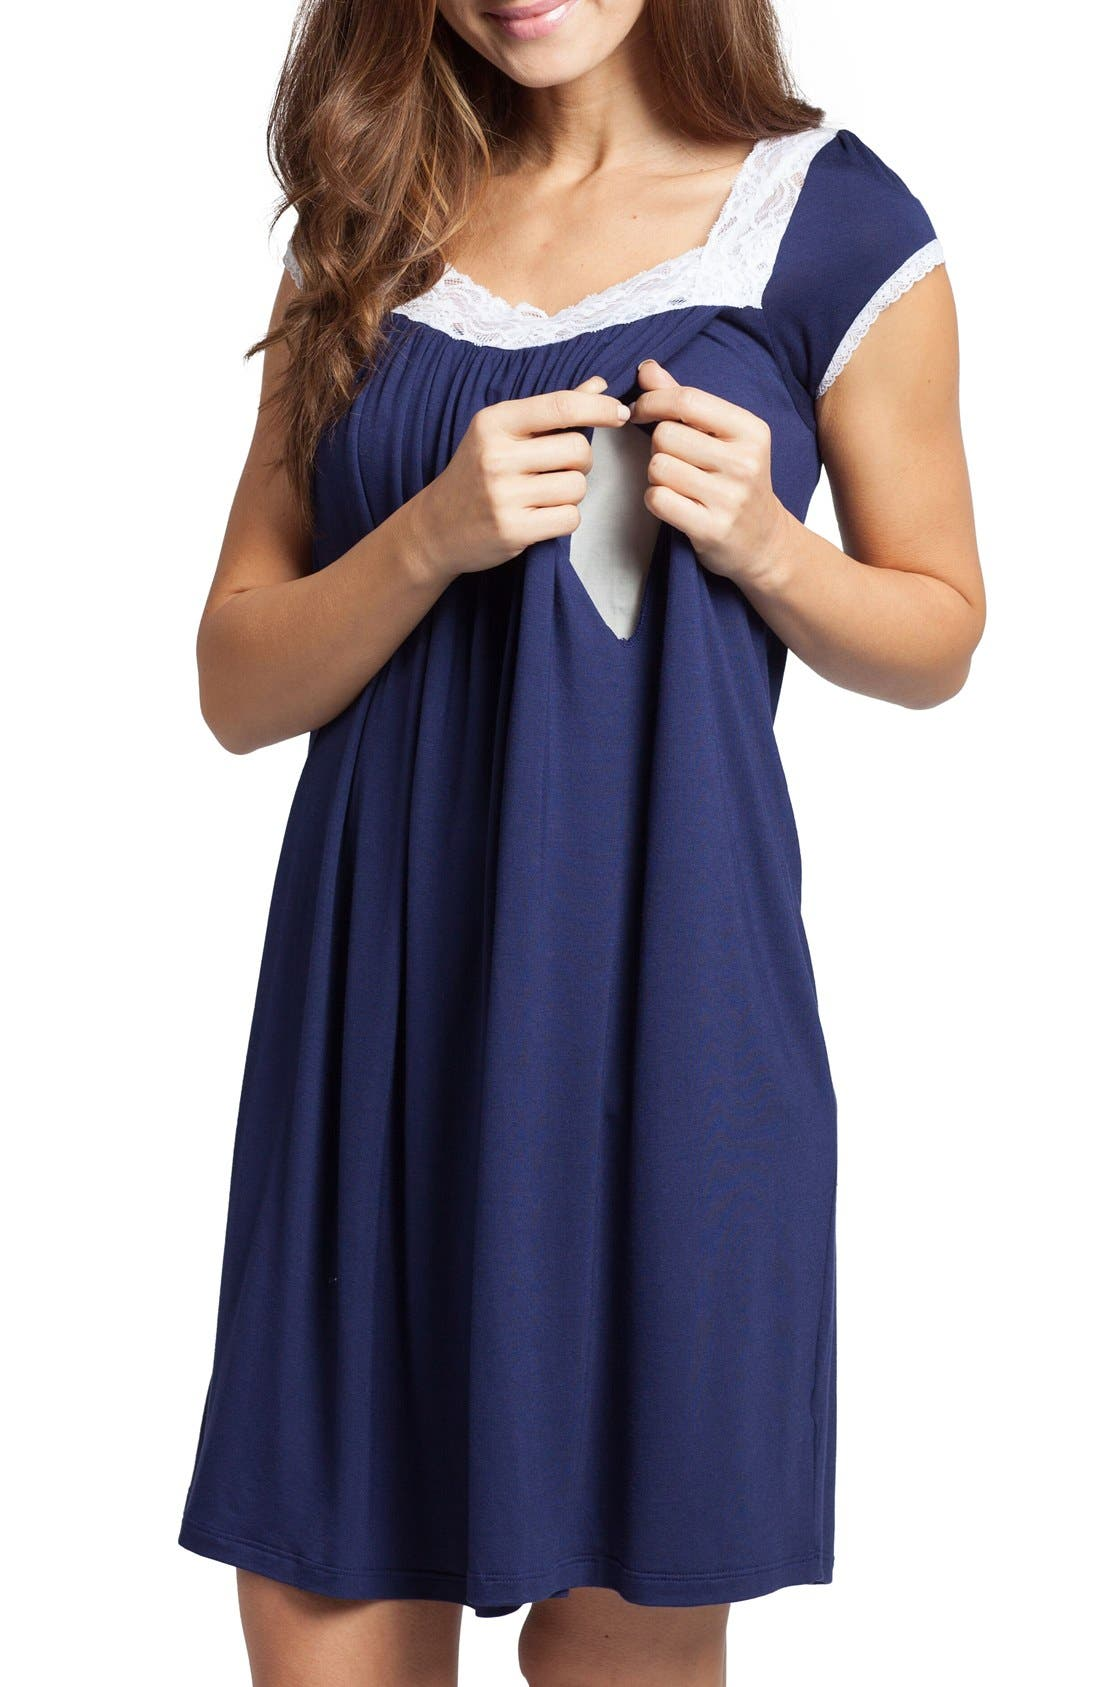 'The Lace' Maternity/Nursing Nightgown,                             Alternate thumbnail 3, color,                             ESTATE BLUE